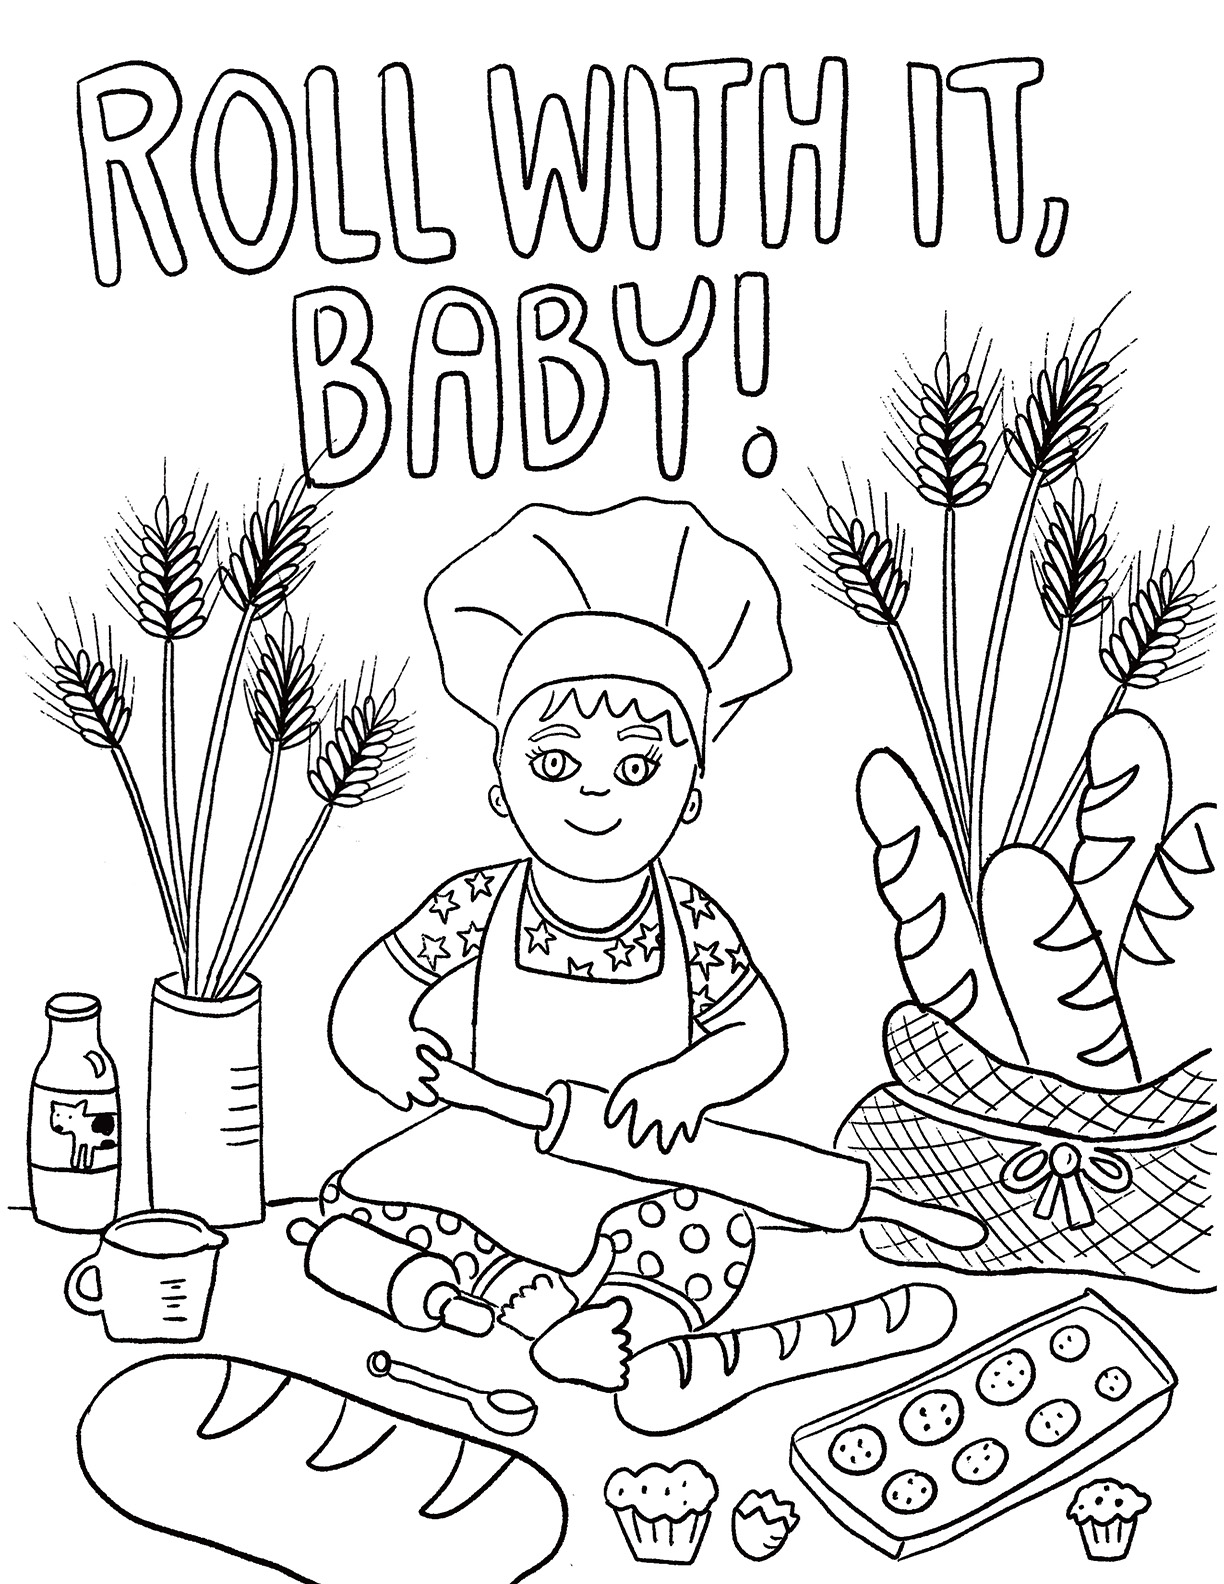 AUGUST FIRST COLORING BOOK: ROLL WITH IT